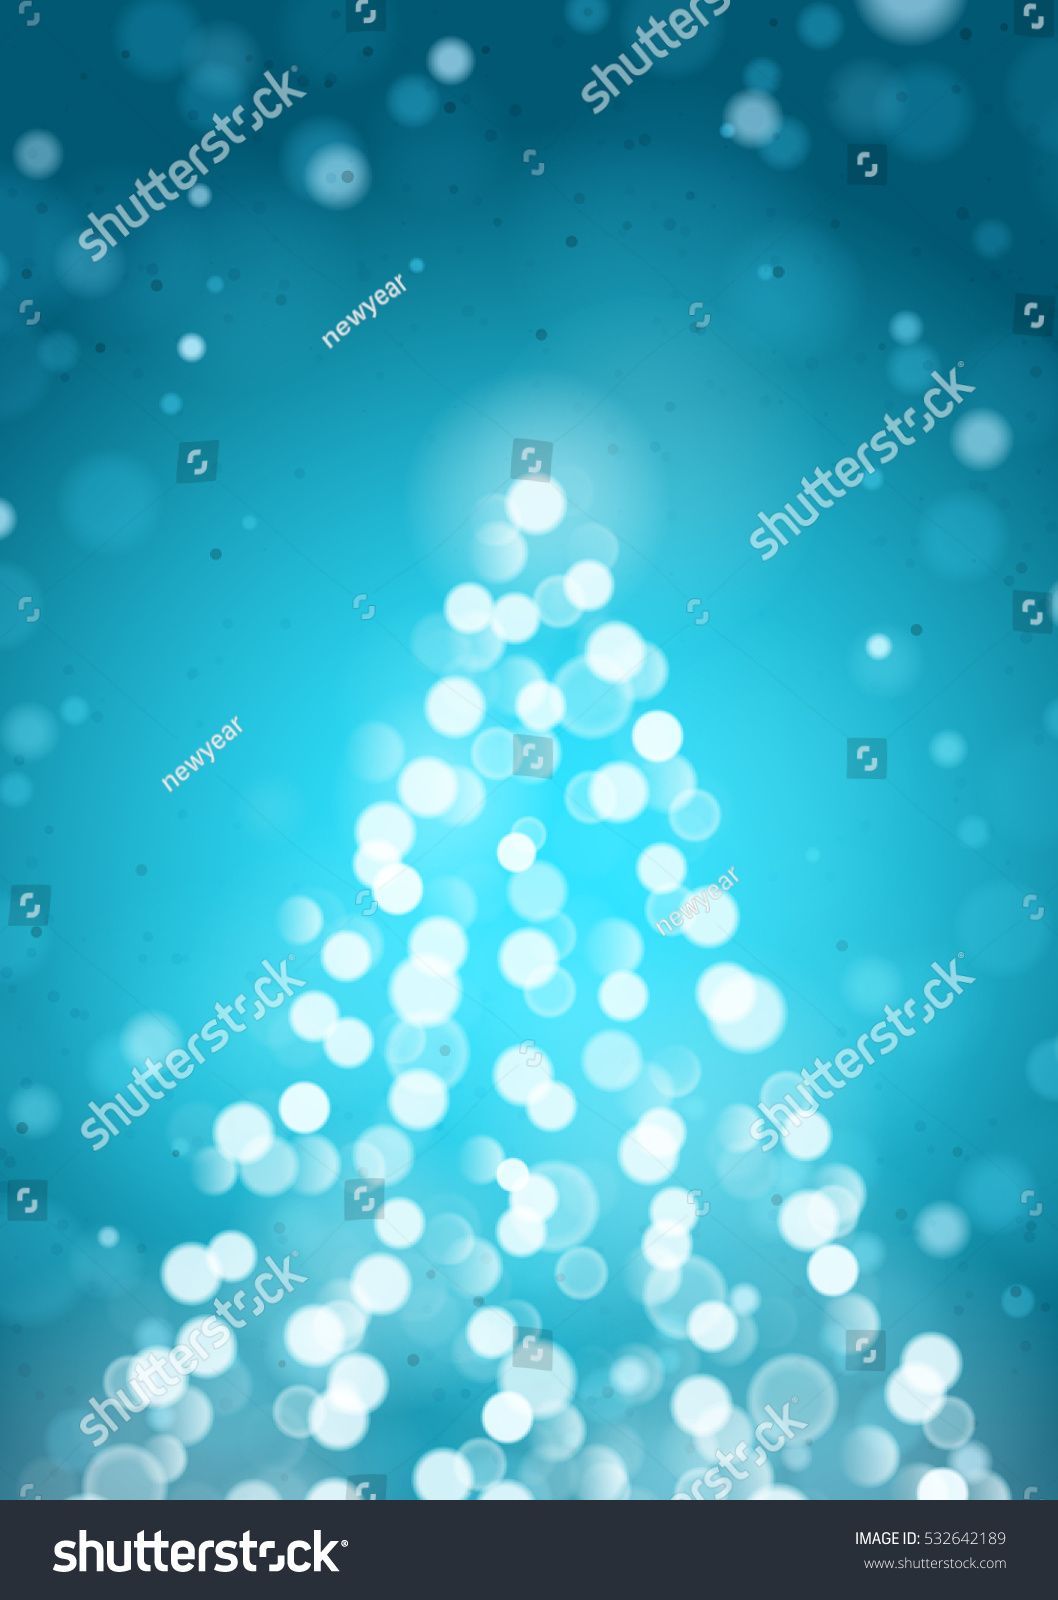 Abstract Christmas Tree By Unfocused Blurred Lights On The Vertical Turquoise Background